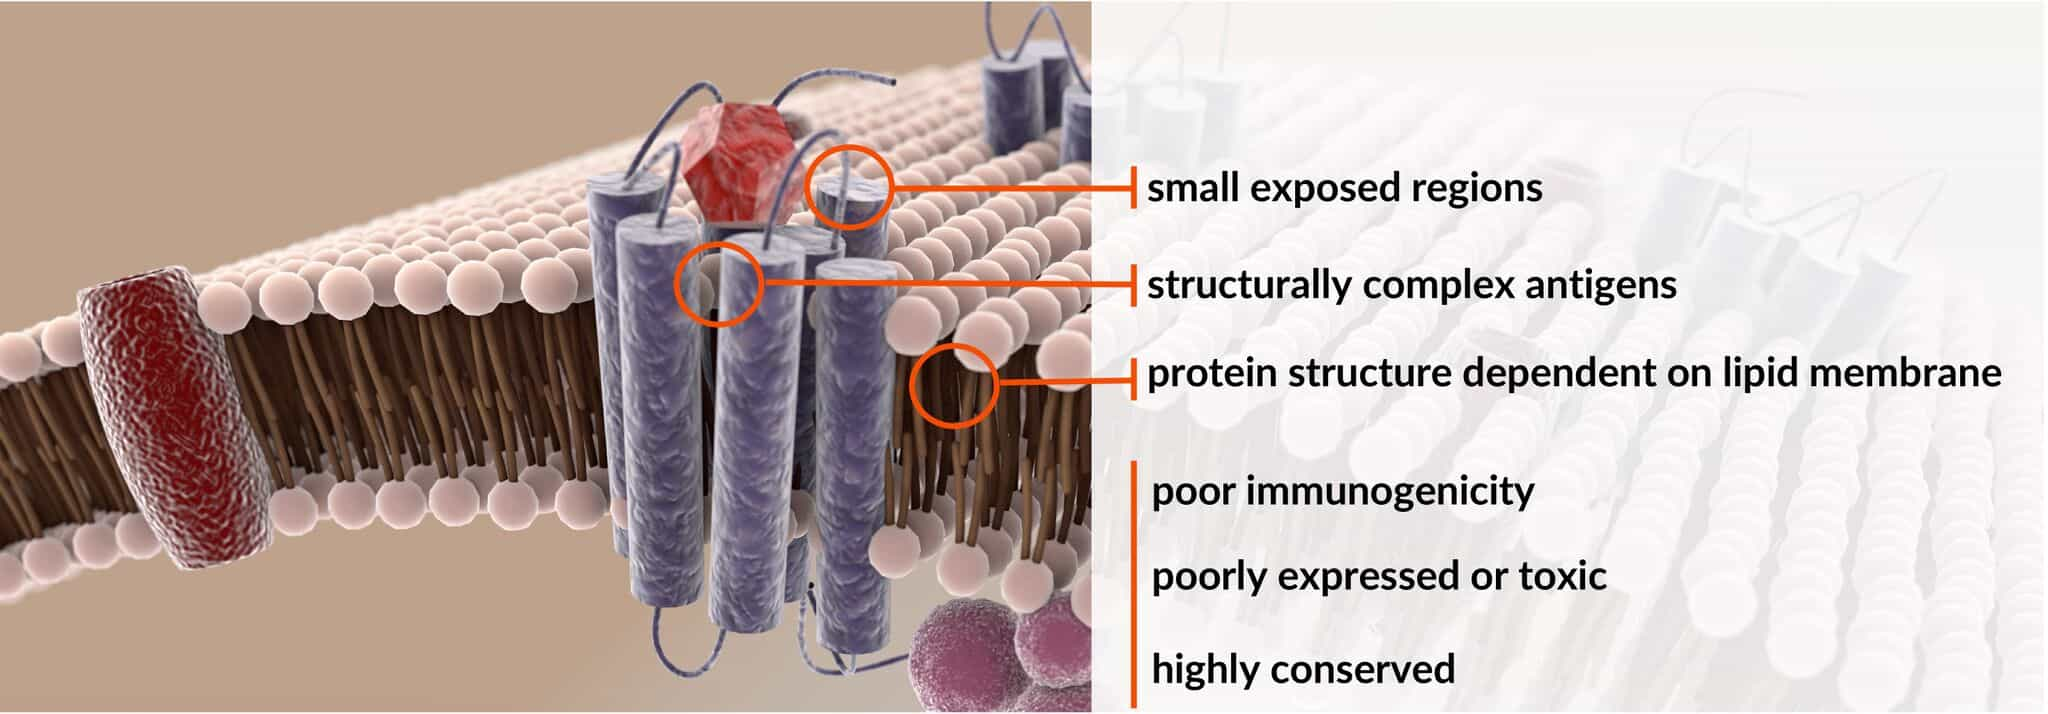 MPS Antibody Discovery Engine, MPS Antibody Discovery Banner